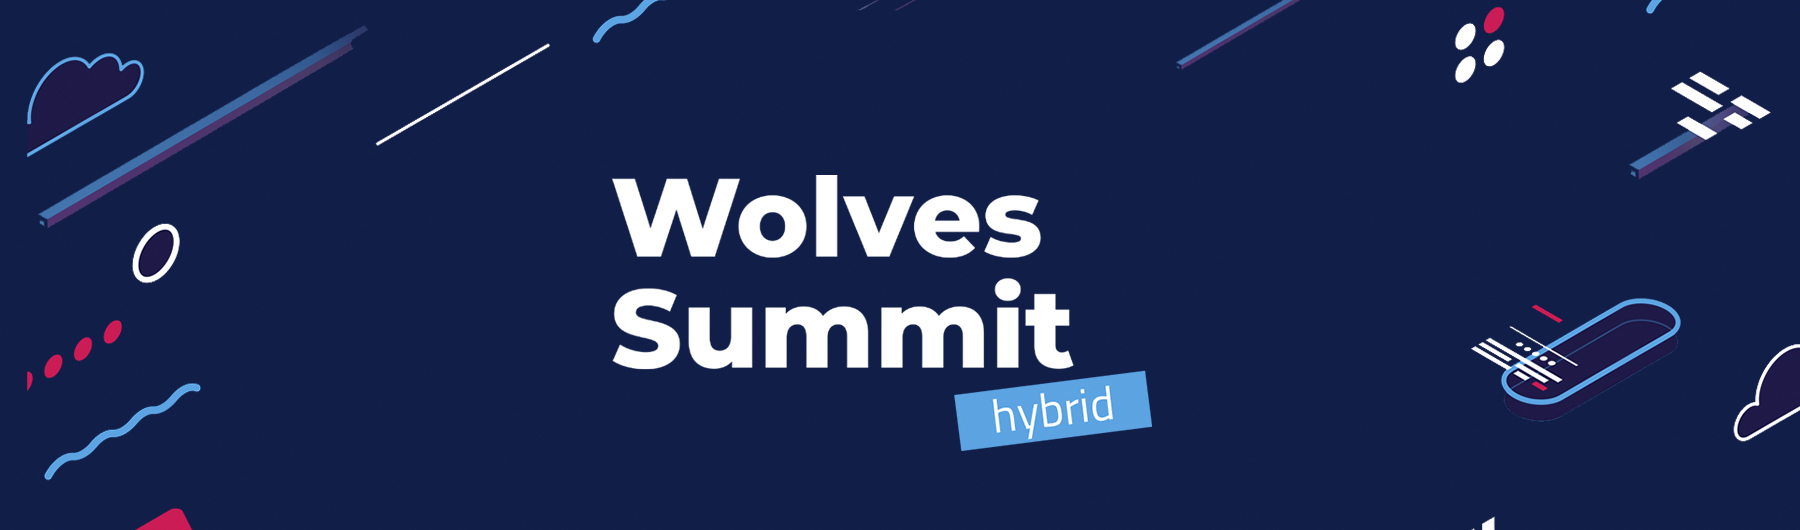 Wolves Summit March 2021